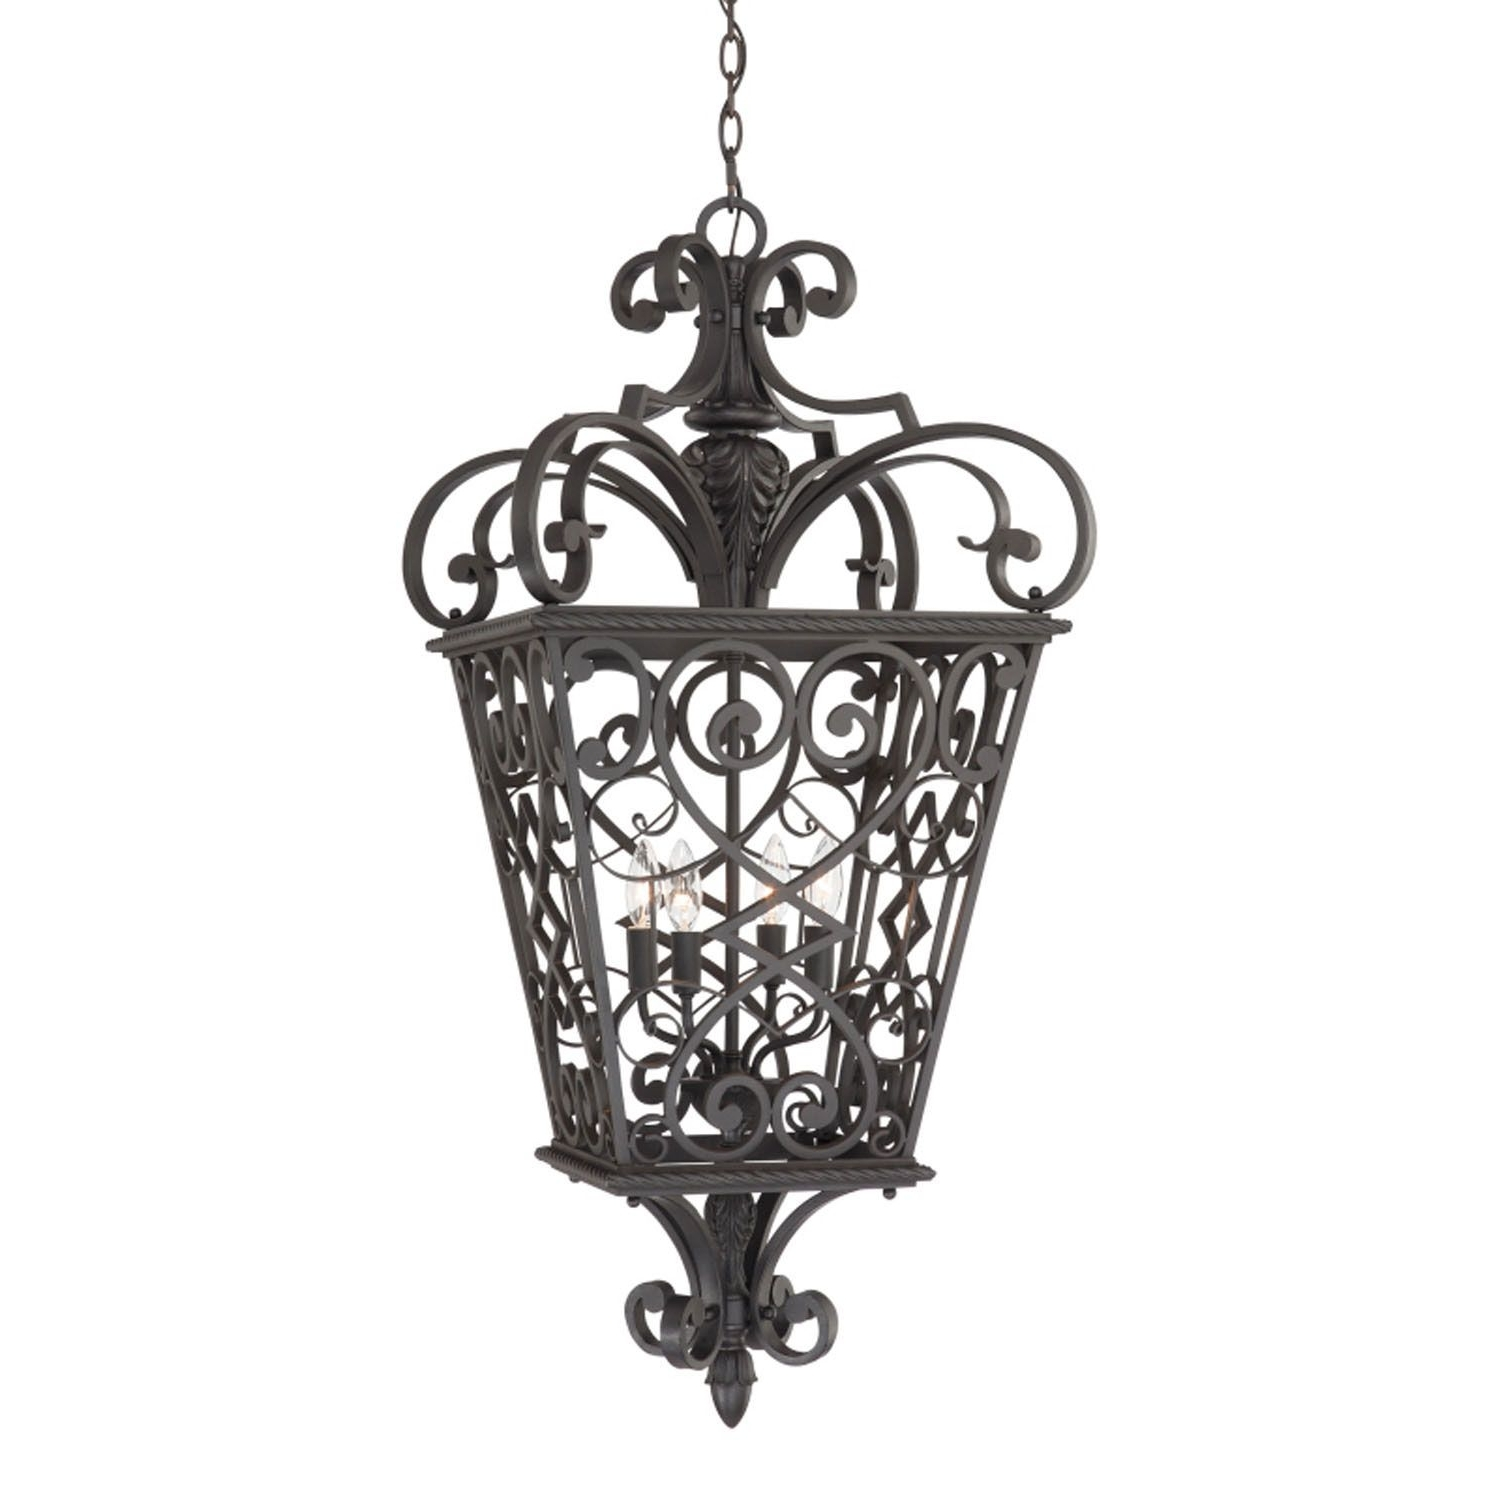 Four Light Outdoor Hanging, Front Porch, Cage Pendant, Traditional Throughout Most Current Traditional Outdoor Hanging Lights (View 10 of 20)